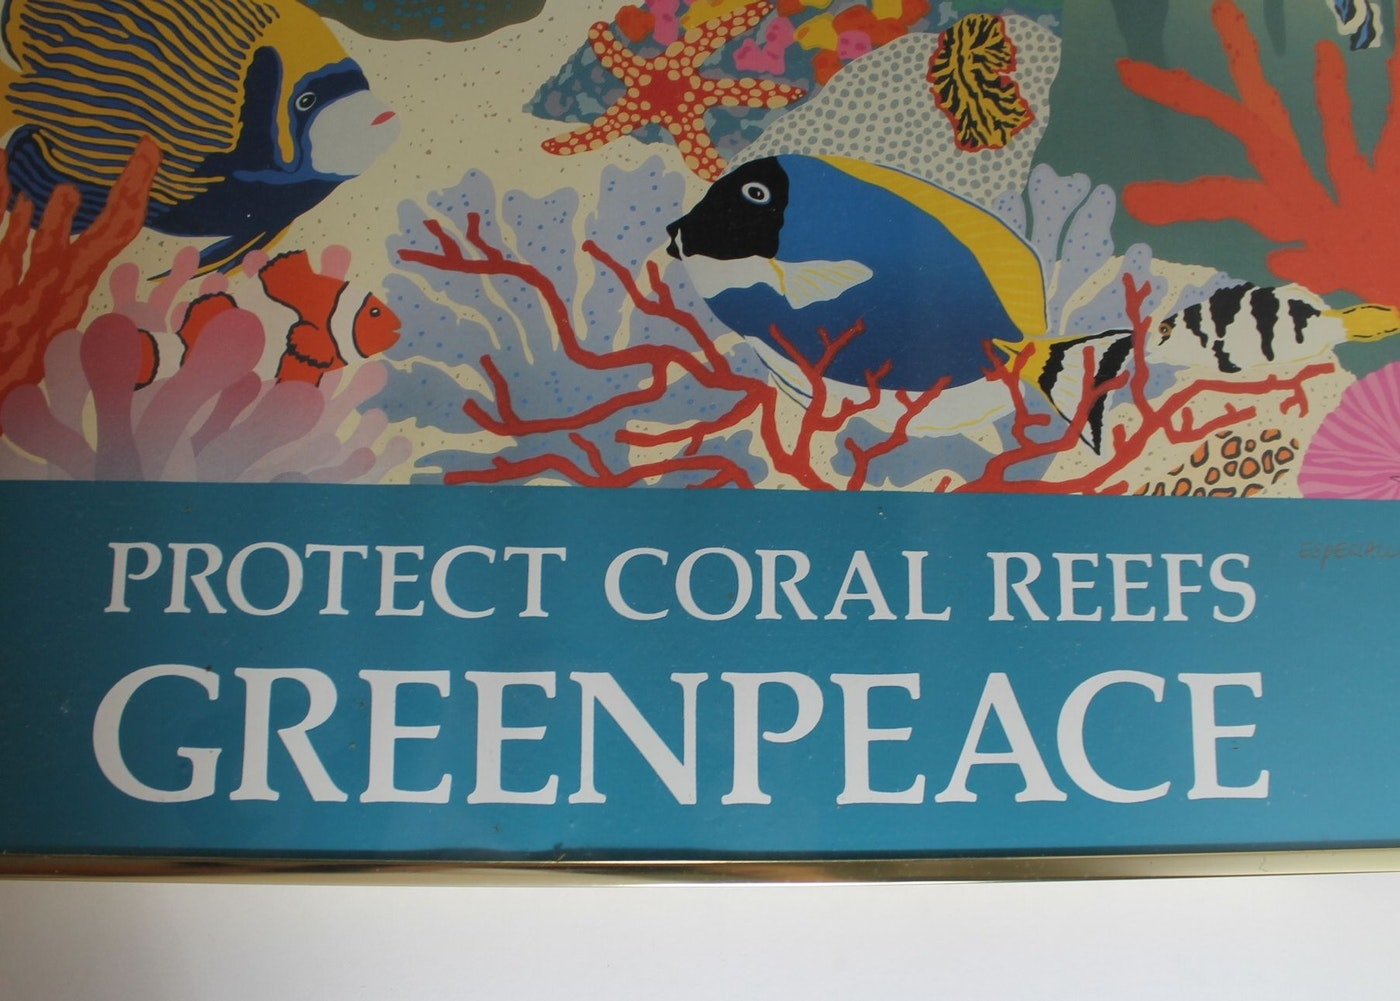 Wall Art Greenpeace : Framed greenpeace poster quot protect coral reefs ebth